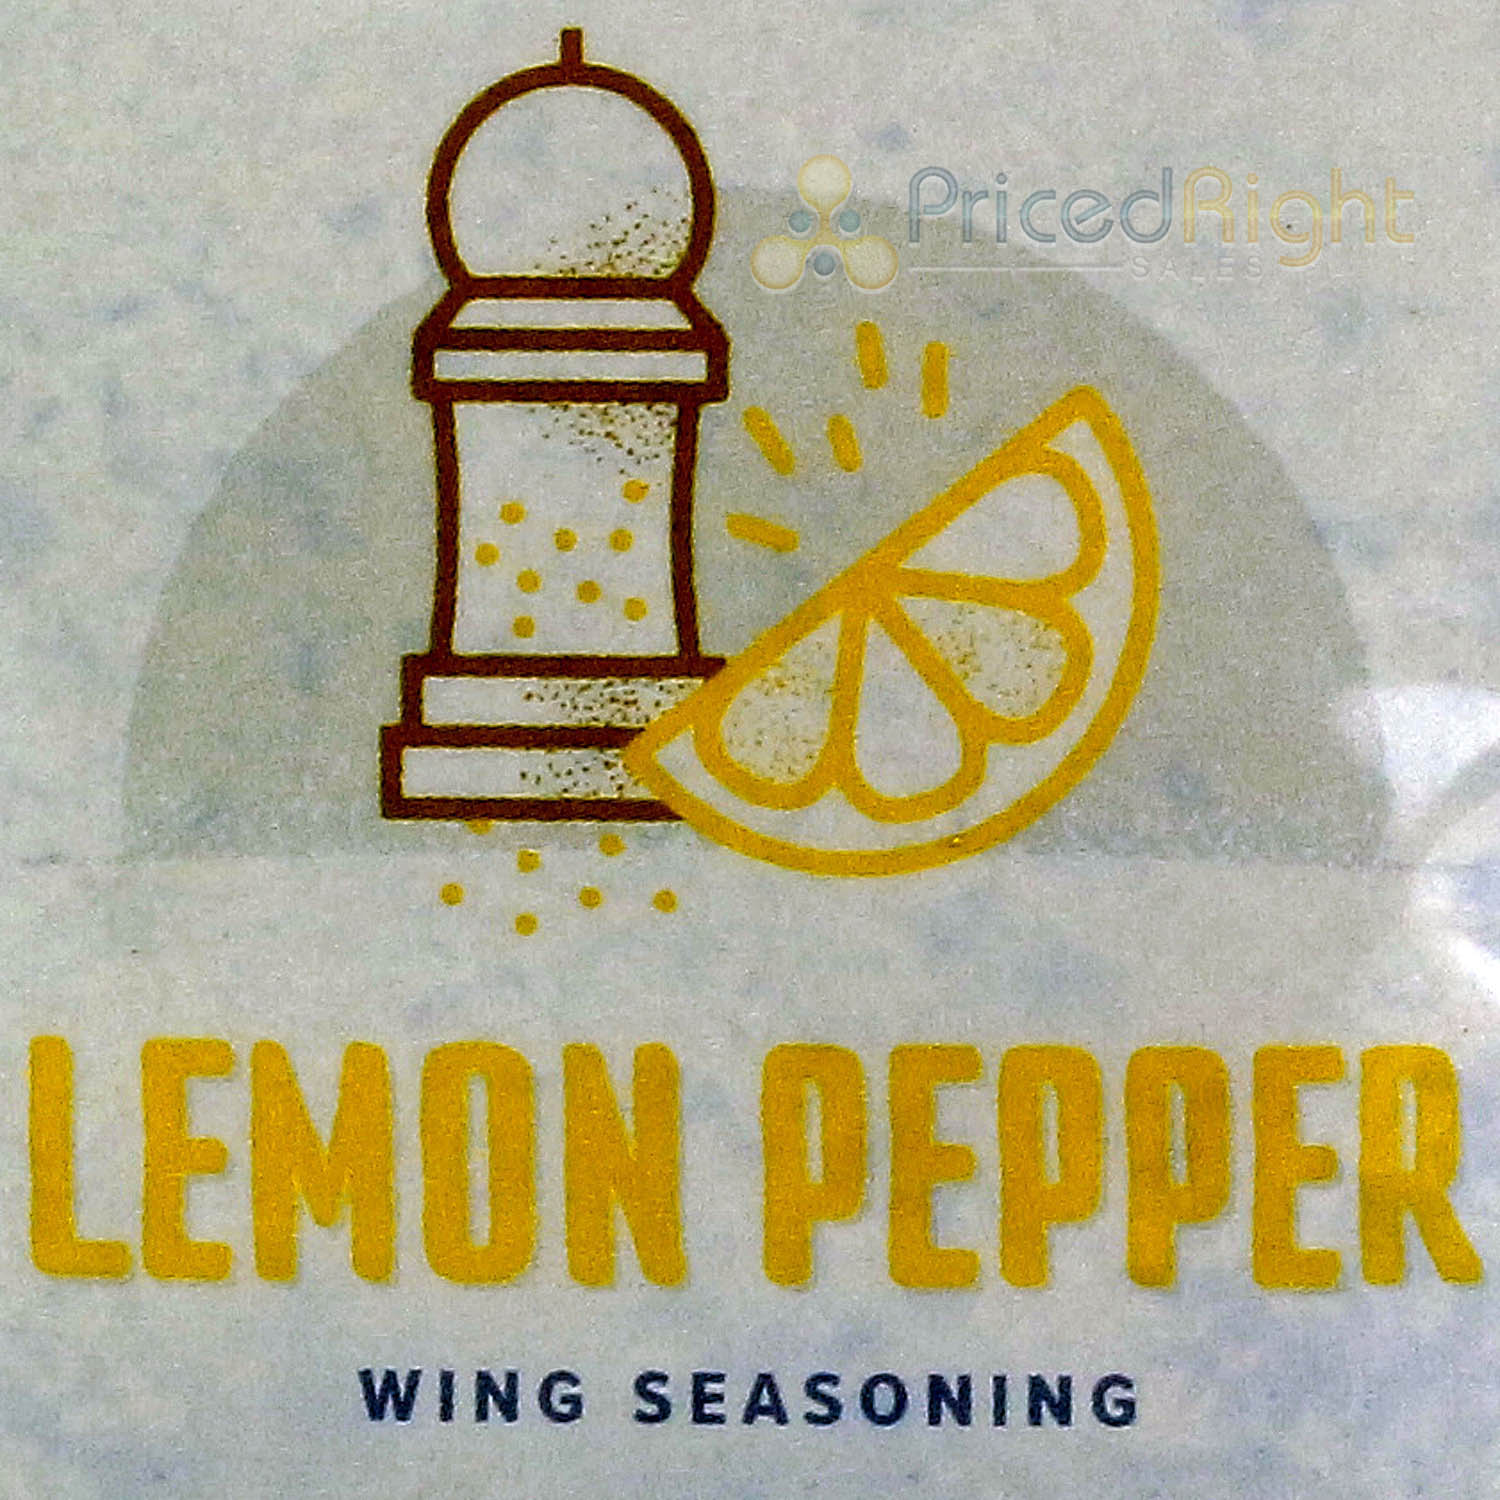 Kosmos Q Wing Dust Lemon Pepper Dry Rub Seasoning Competition Rated Pit Master